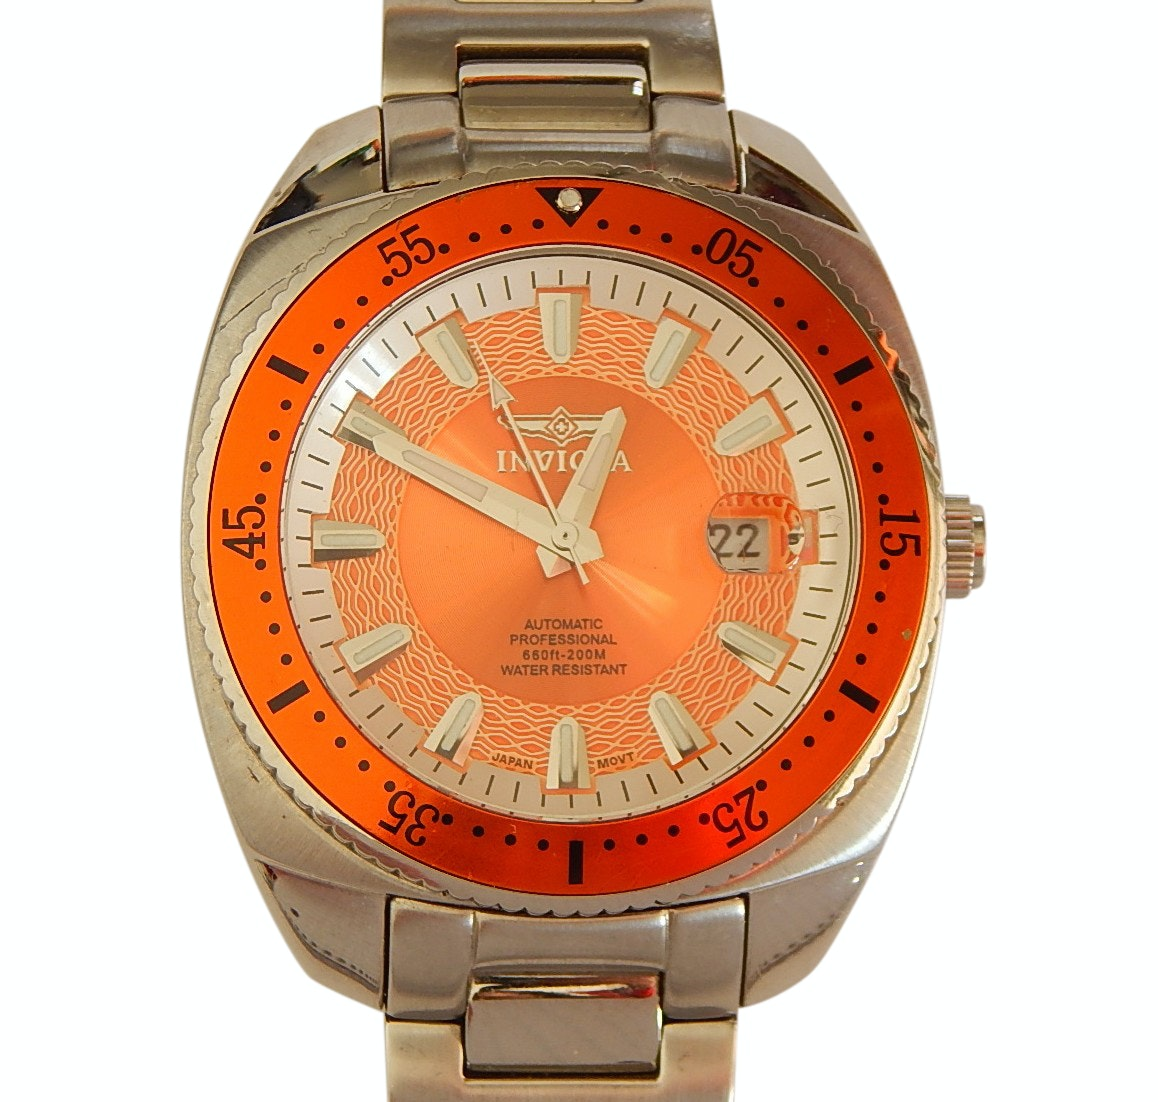 Invicta Model 3882 Pro Divers Stainless Steel Wristwatch with Orange Display